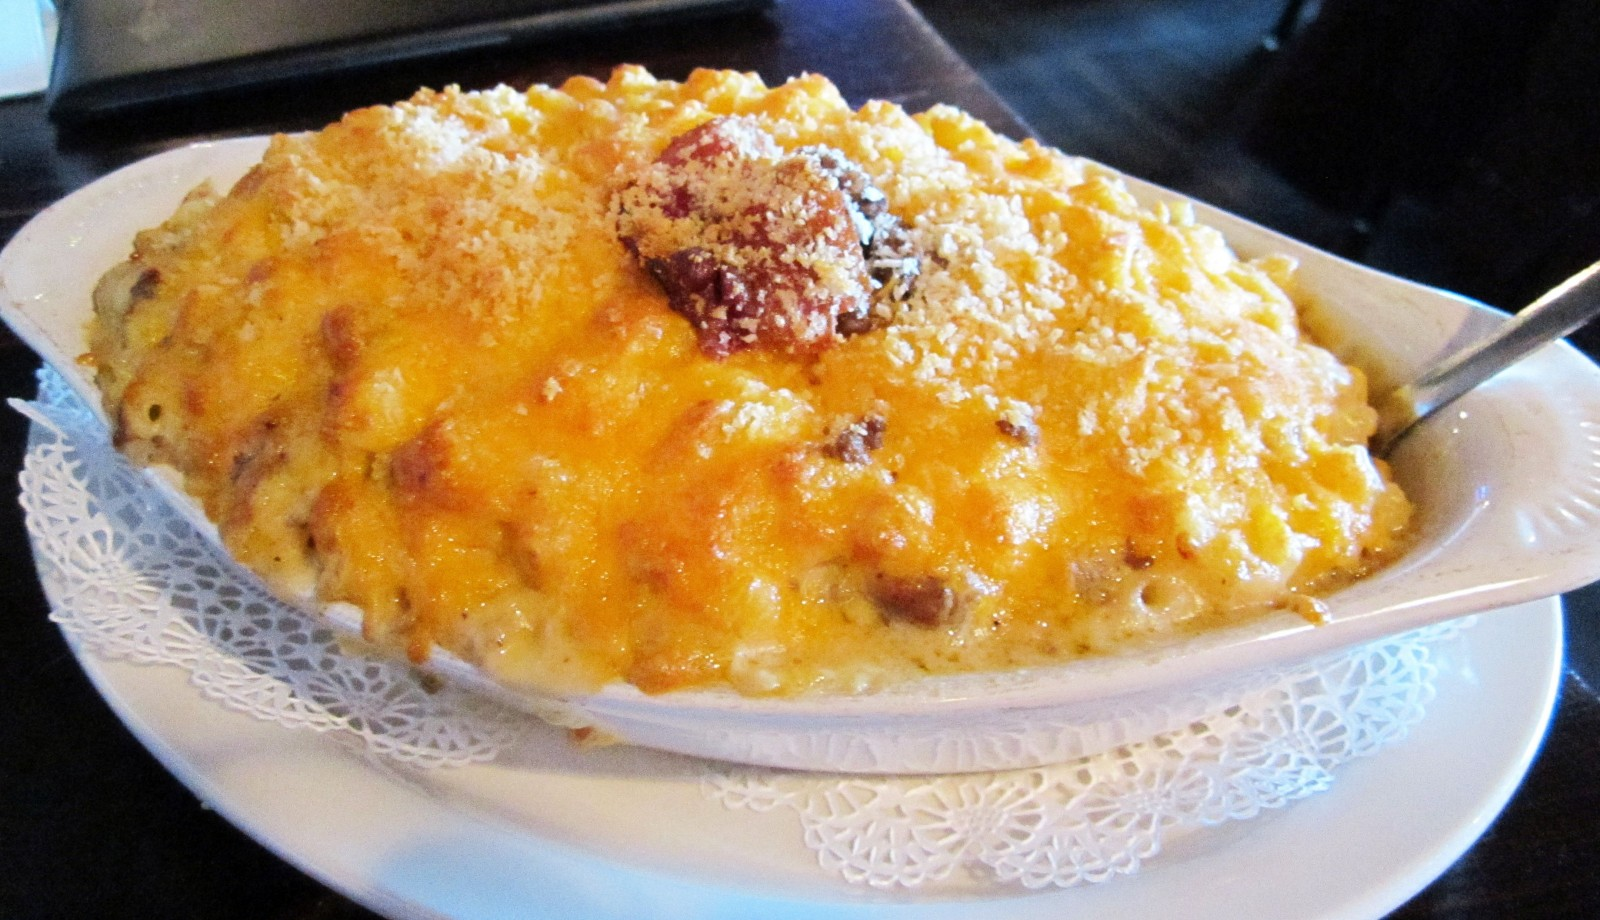 Mooney's mac 'n cheese is just one of the many kinds that are served in Buffalo restaurants. (Emeri Krawczyk/Special to The News)